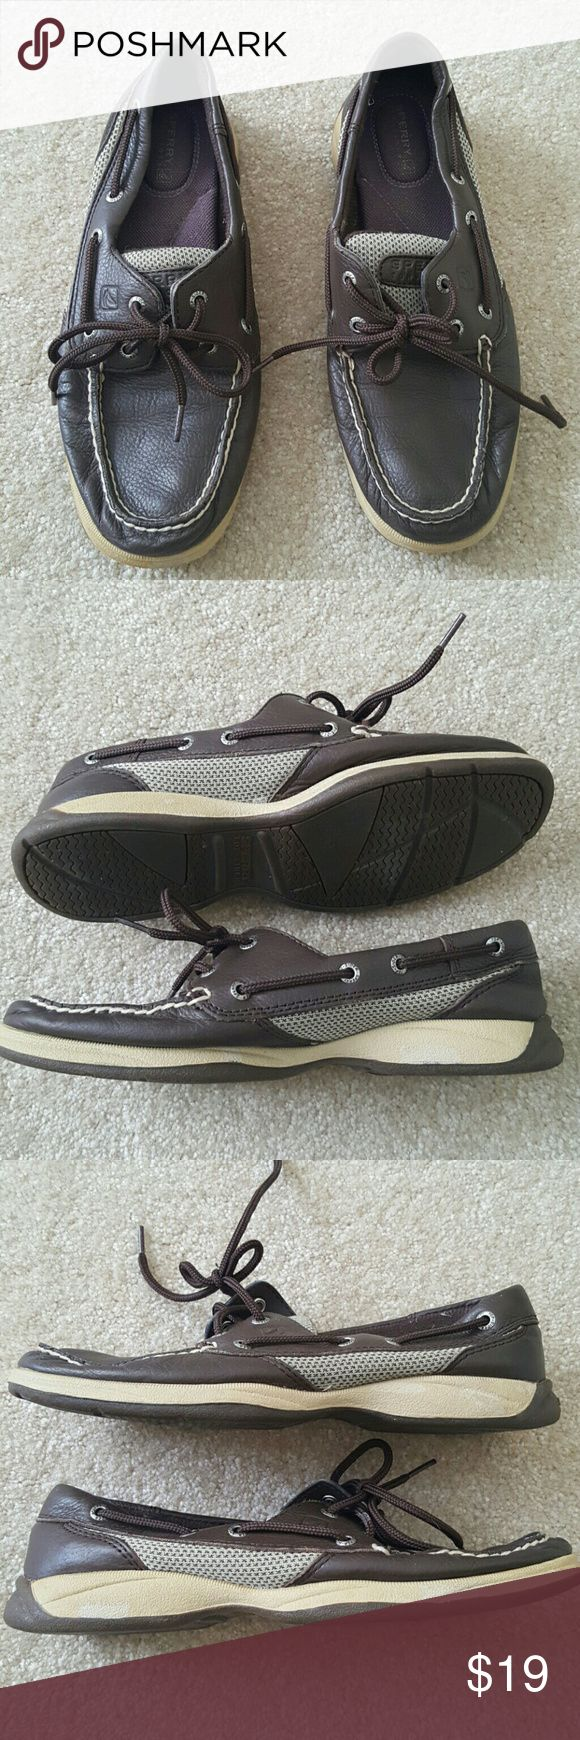 Sperry top siders 🌀In good condition, has some scuffs on beige rubber part. Size 7 Sperry Top-Sider Shoes Flats & Loafers